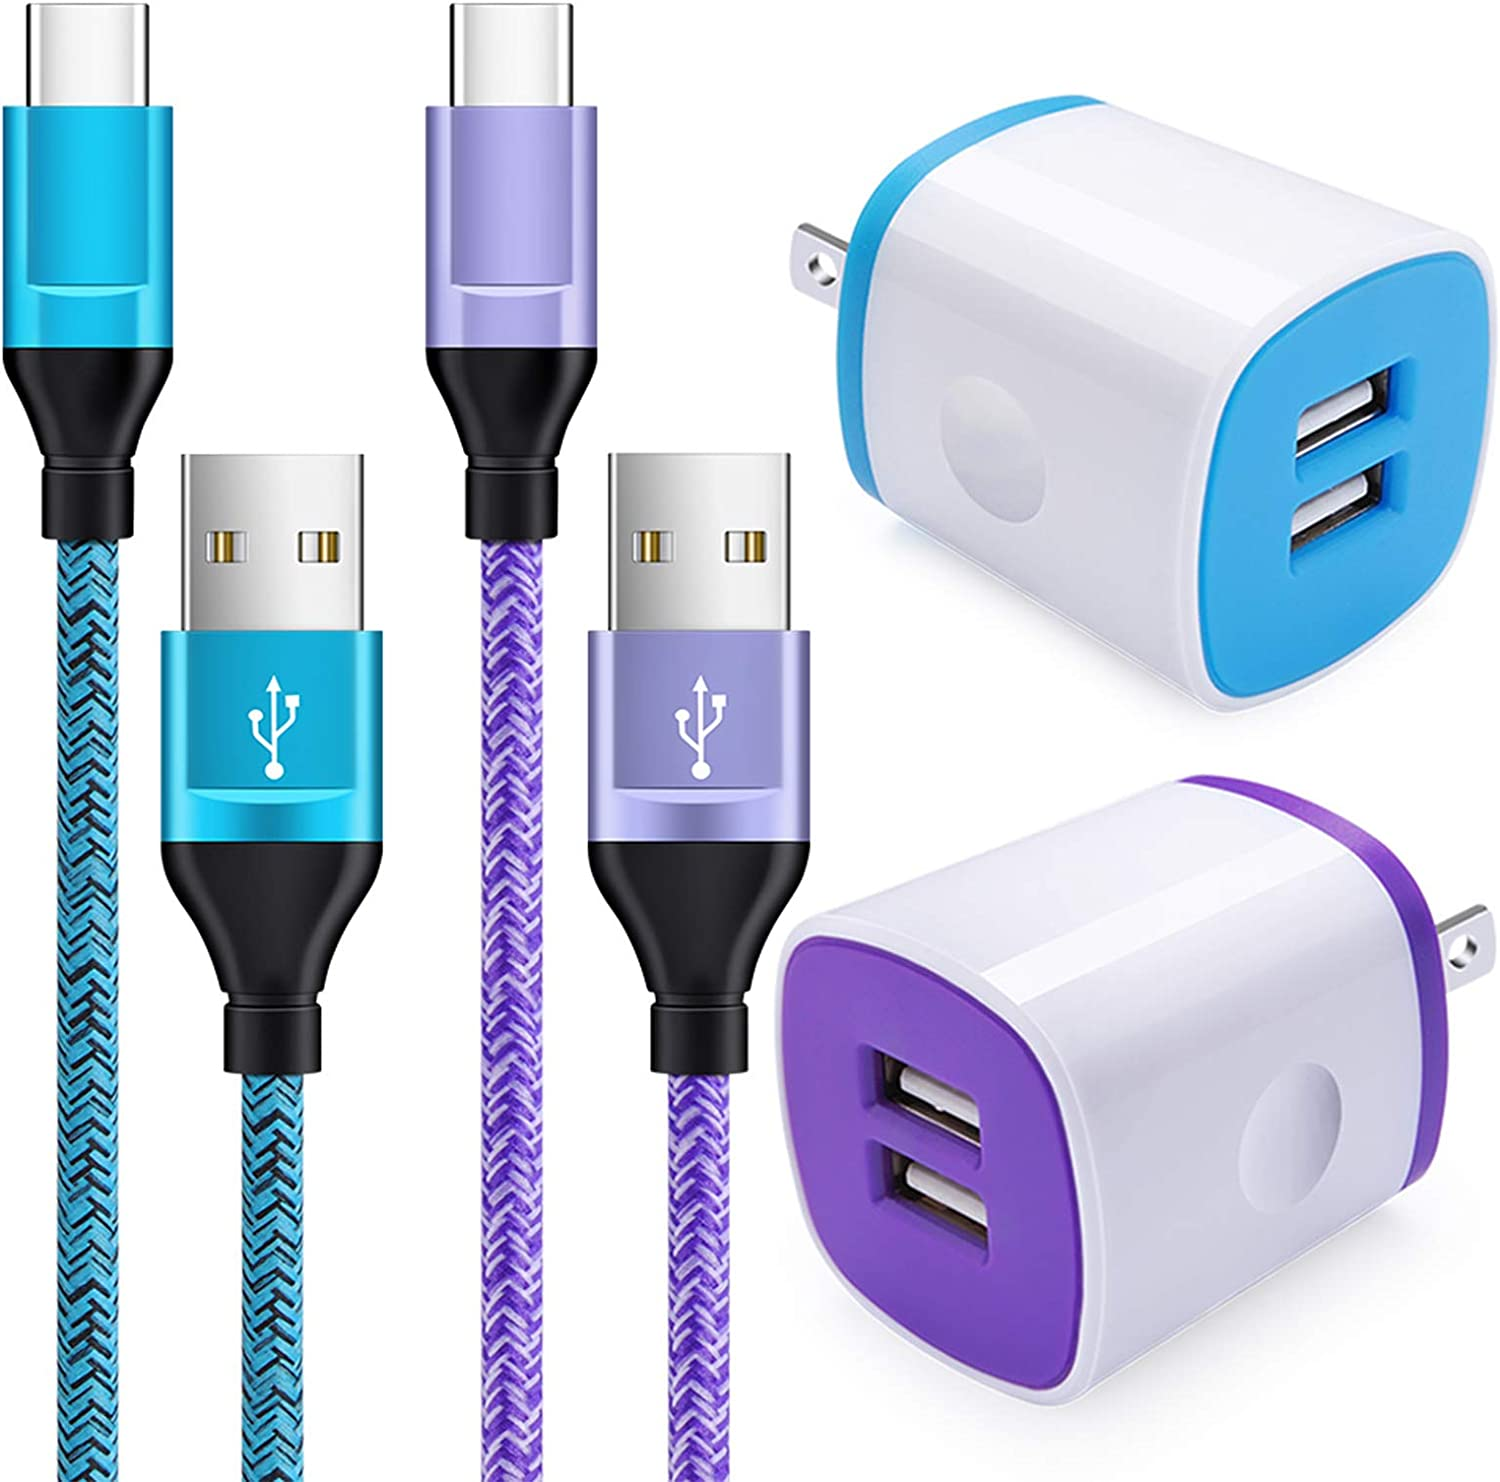 Google Pixel XL Samsung Galaxy S10e//Note 10 S20 USB C Charger Set 4 in 1 ,3.4A Car Adapter,2.1A Wall Charger Block with 2Pack 6Ft Type C Charger Cord Compatible with Moto Z4//G7//G7 G8 Plus//G7 Play//X5